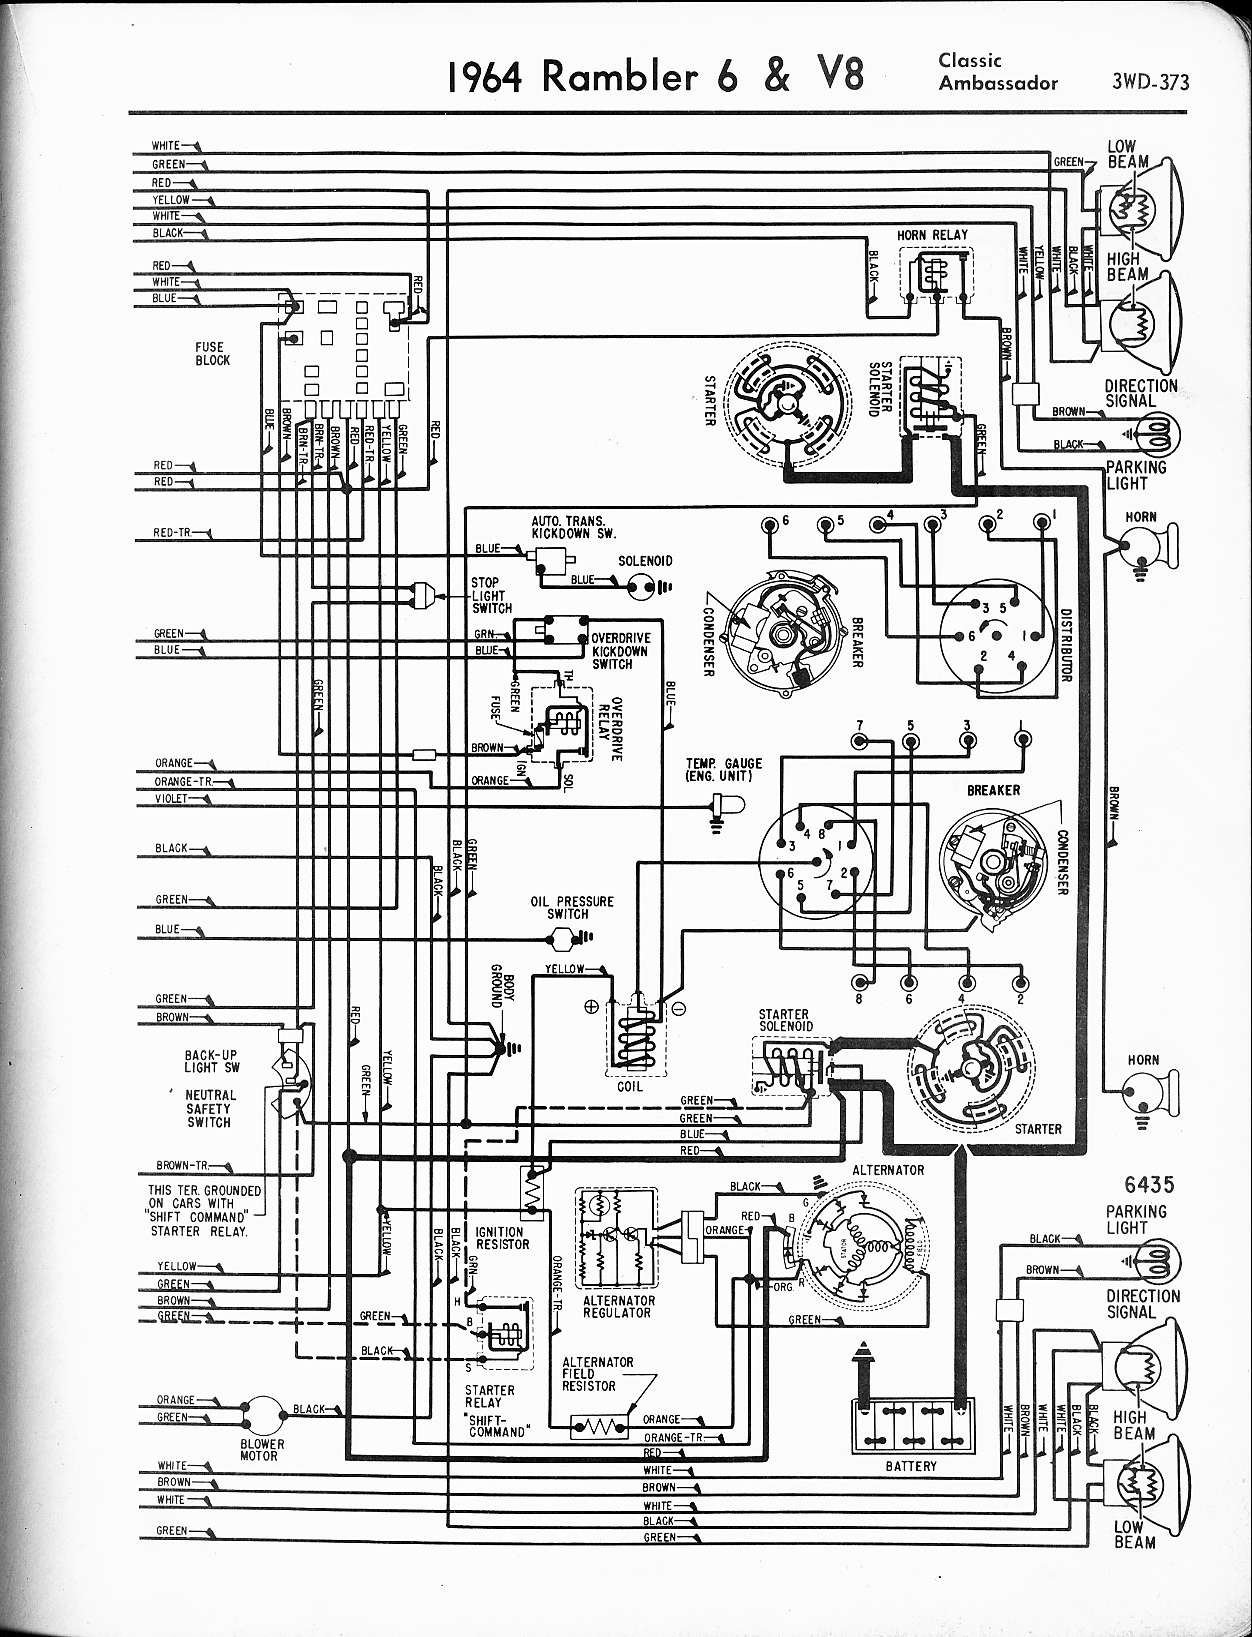 rambler wiring diagrams the old car manual project rh oldcarmanualproject com 1987 Toyota Wiring Harness Diagram Painless Wiring Harness Diagram